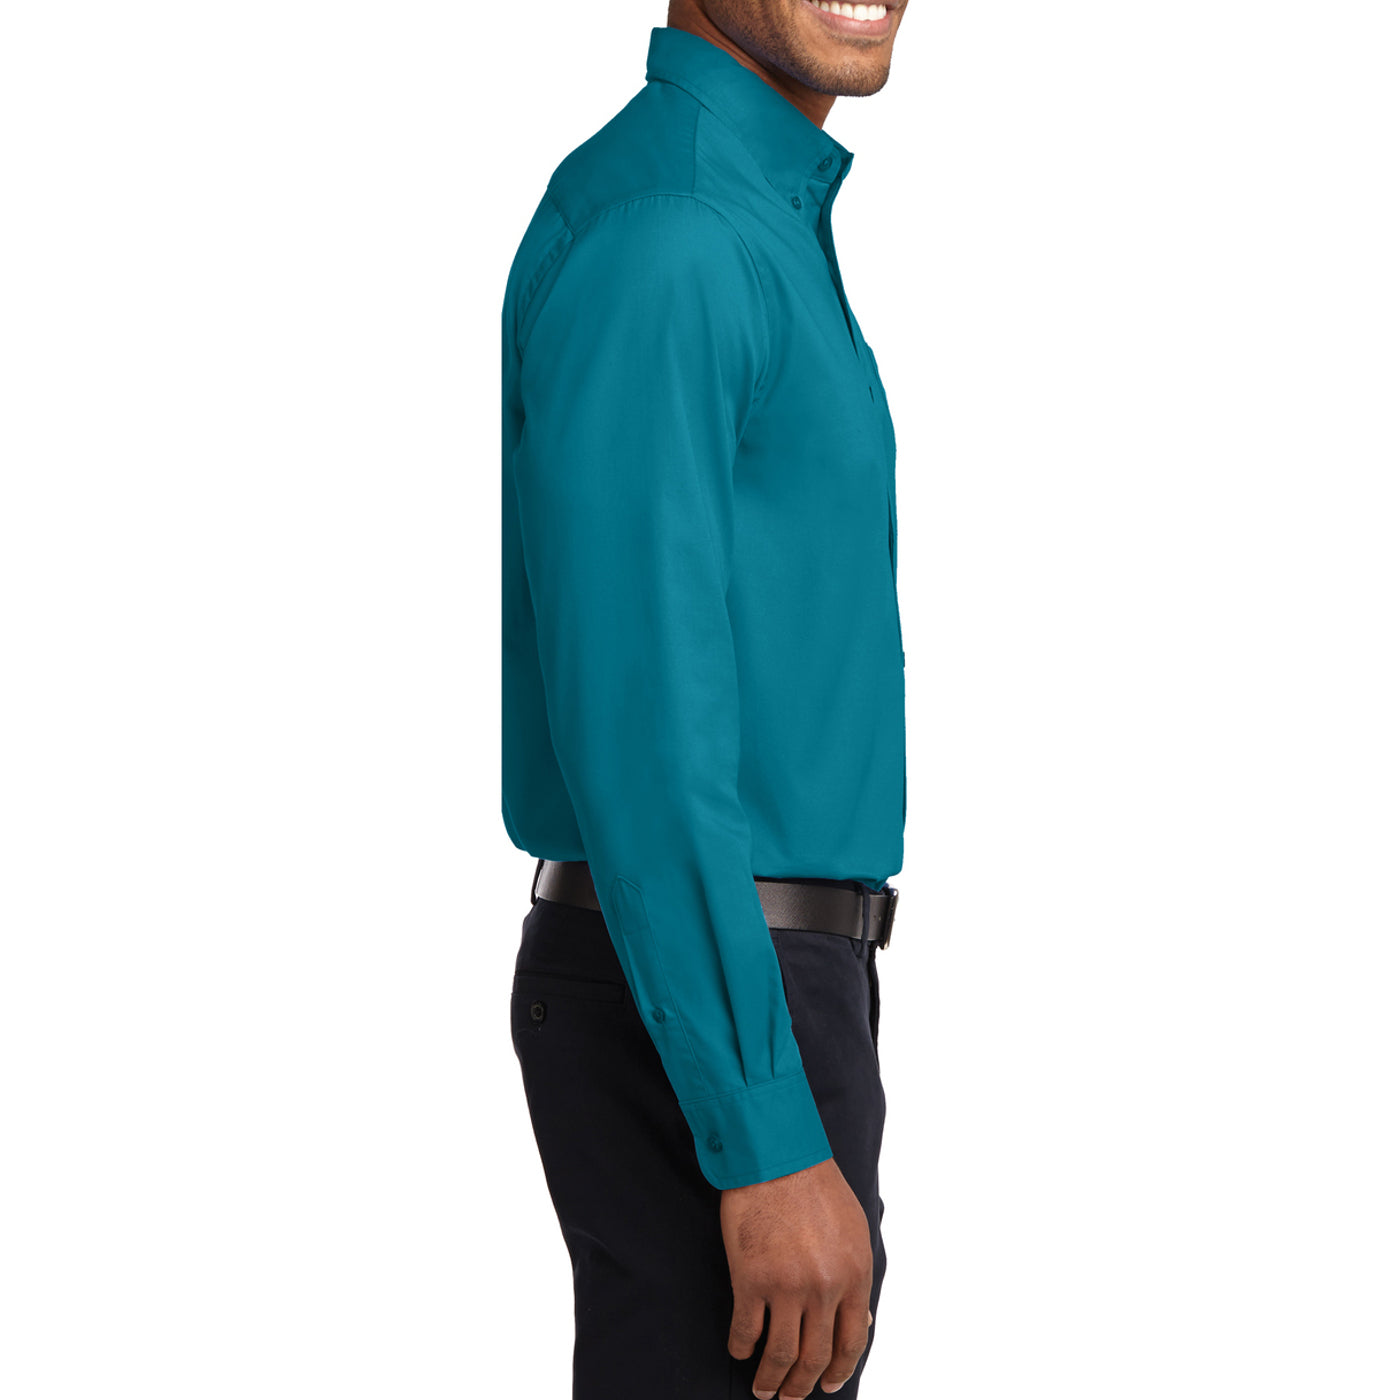 Men's Long Sleeve Easy Care Shirt - Teal Green - Side